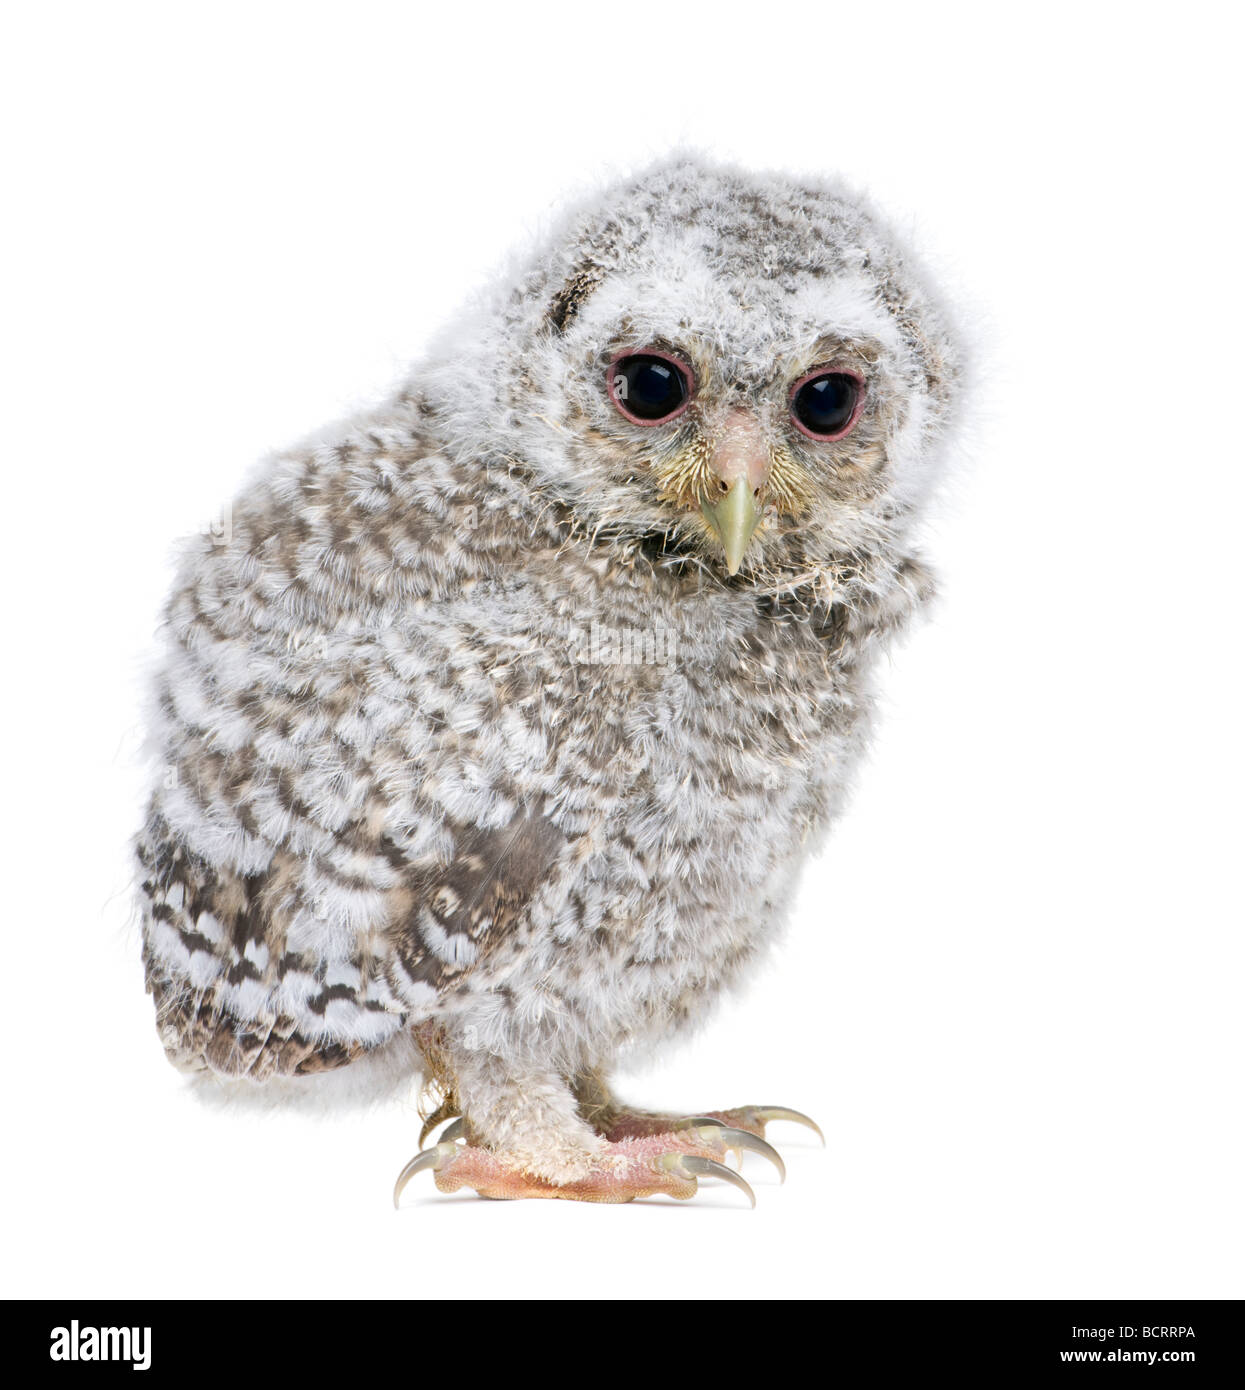 Owlet, Athene noctua, 4 weeks old, in front of a white background, studio shot - Stock Image